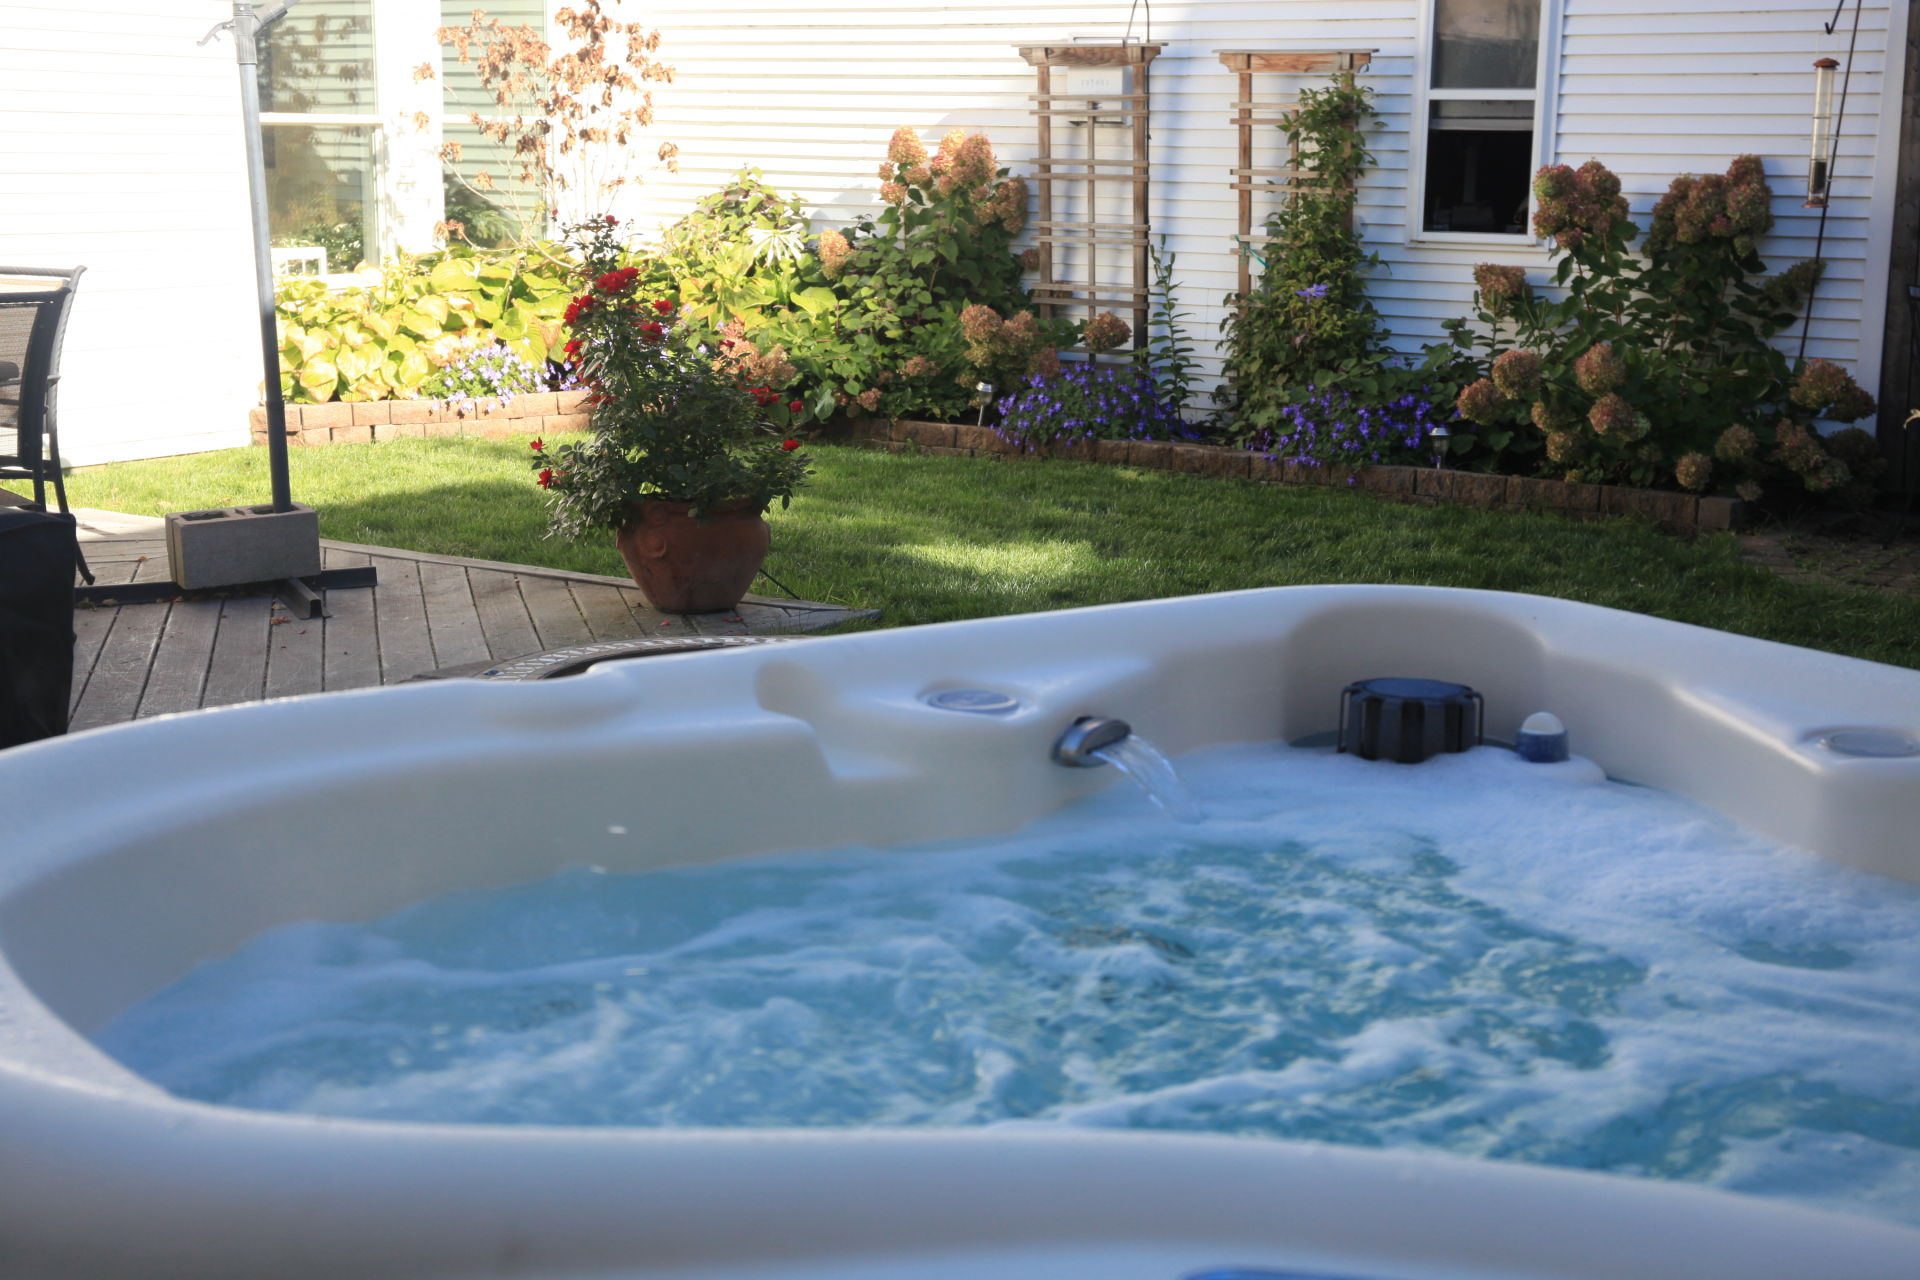 Outdoor 2 person hot tub